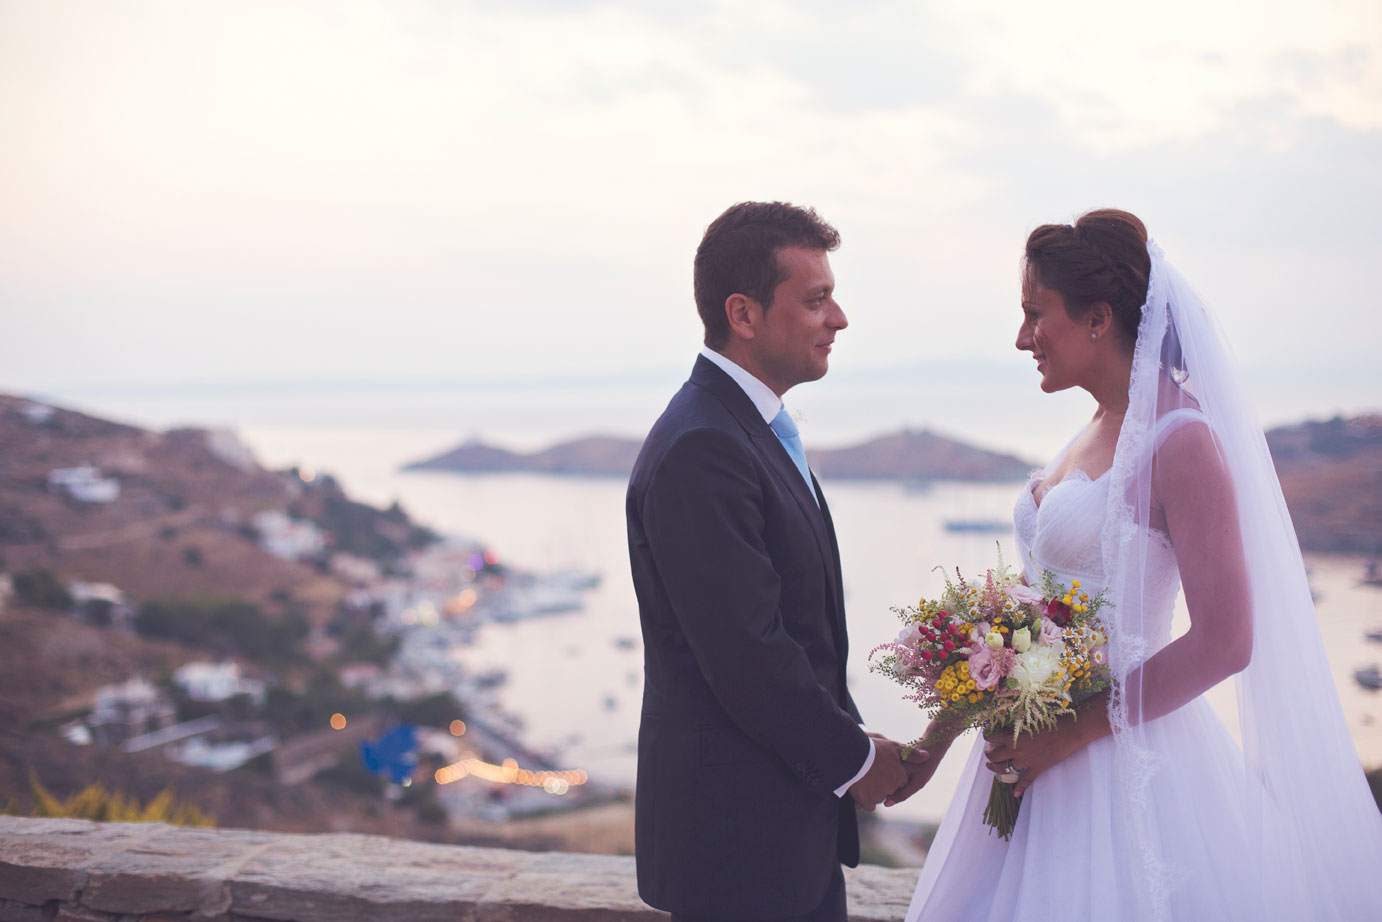 Fiorello Photography - Wedding in Kea